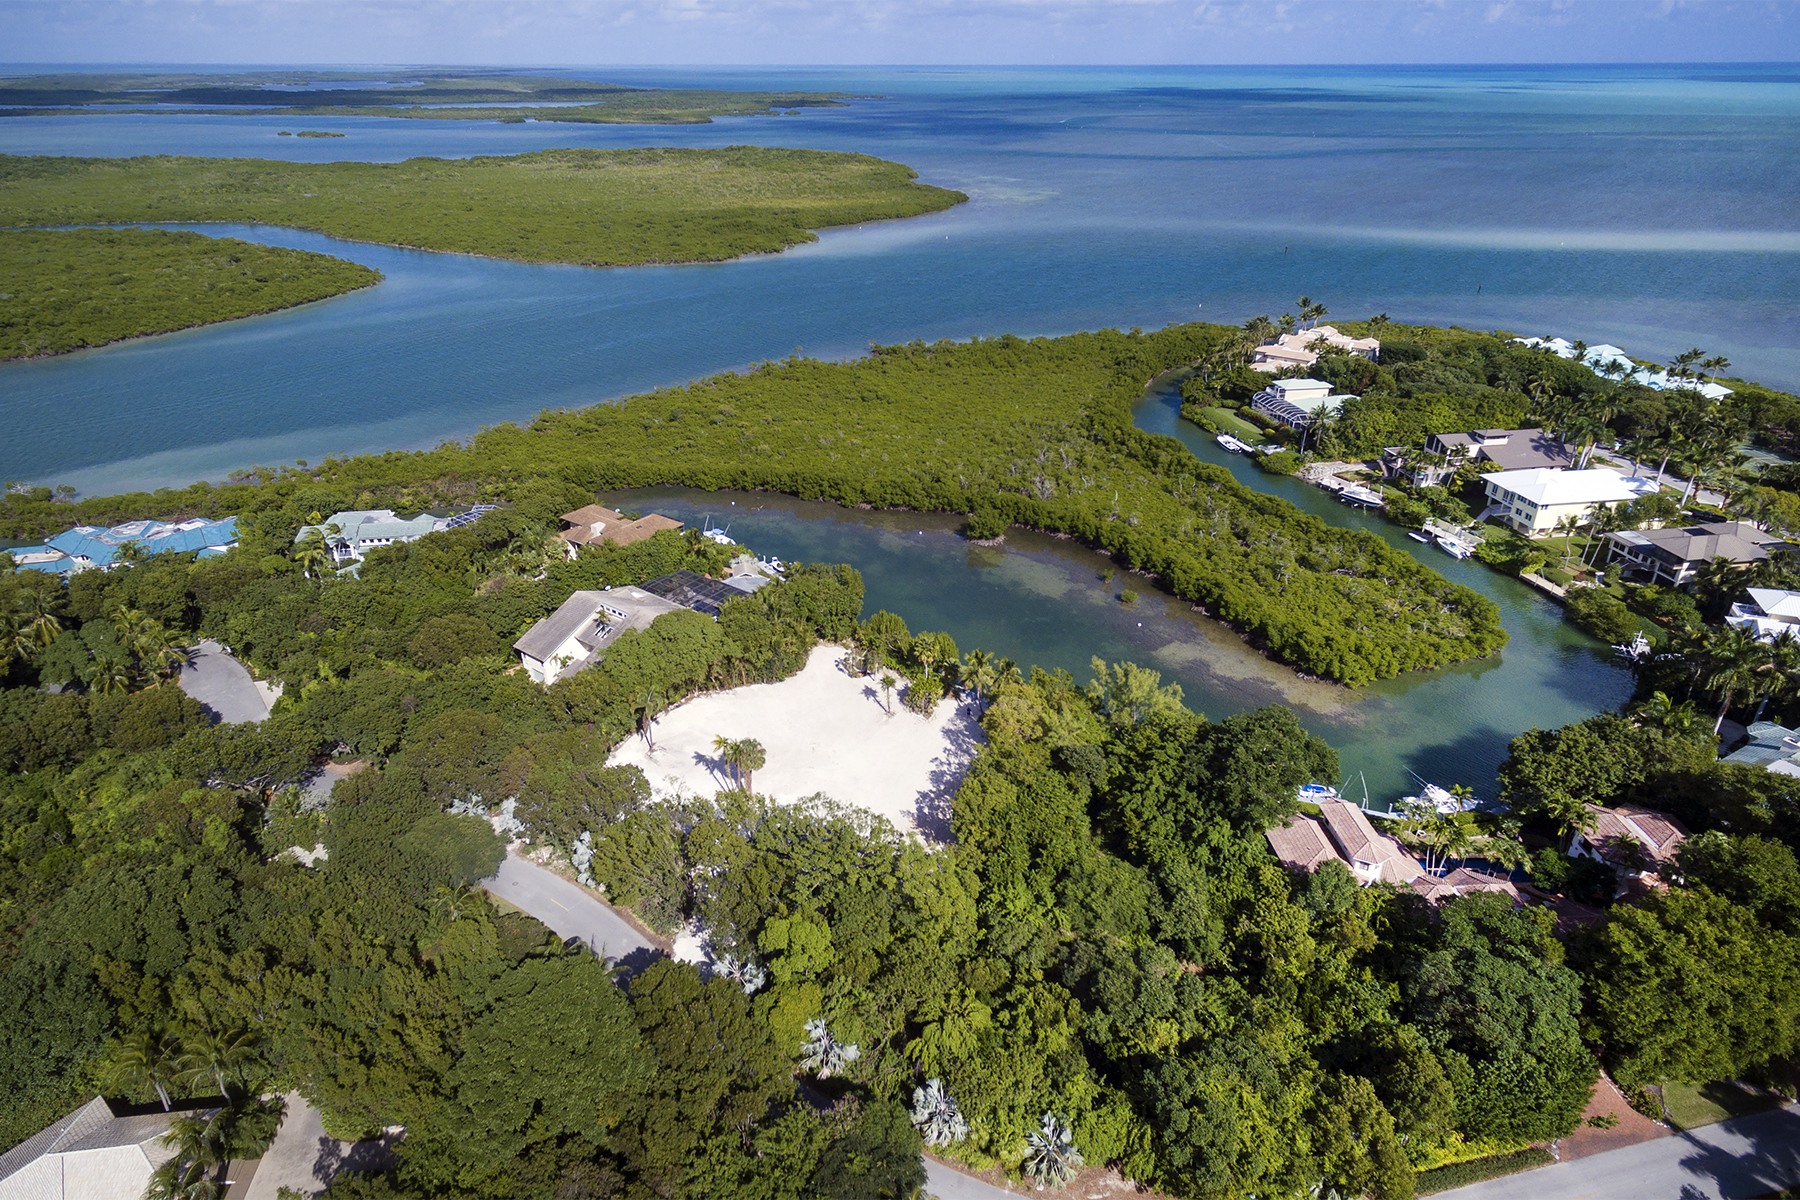 Land for Sale at Expansive Location to Build Your Dream Home at Ocean Reef 40-42 Cardinal Lane Key Largo, Florida, 33037 United States